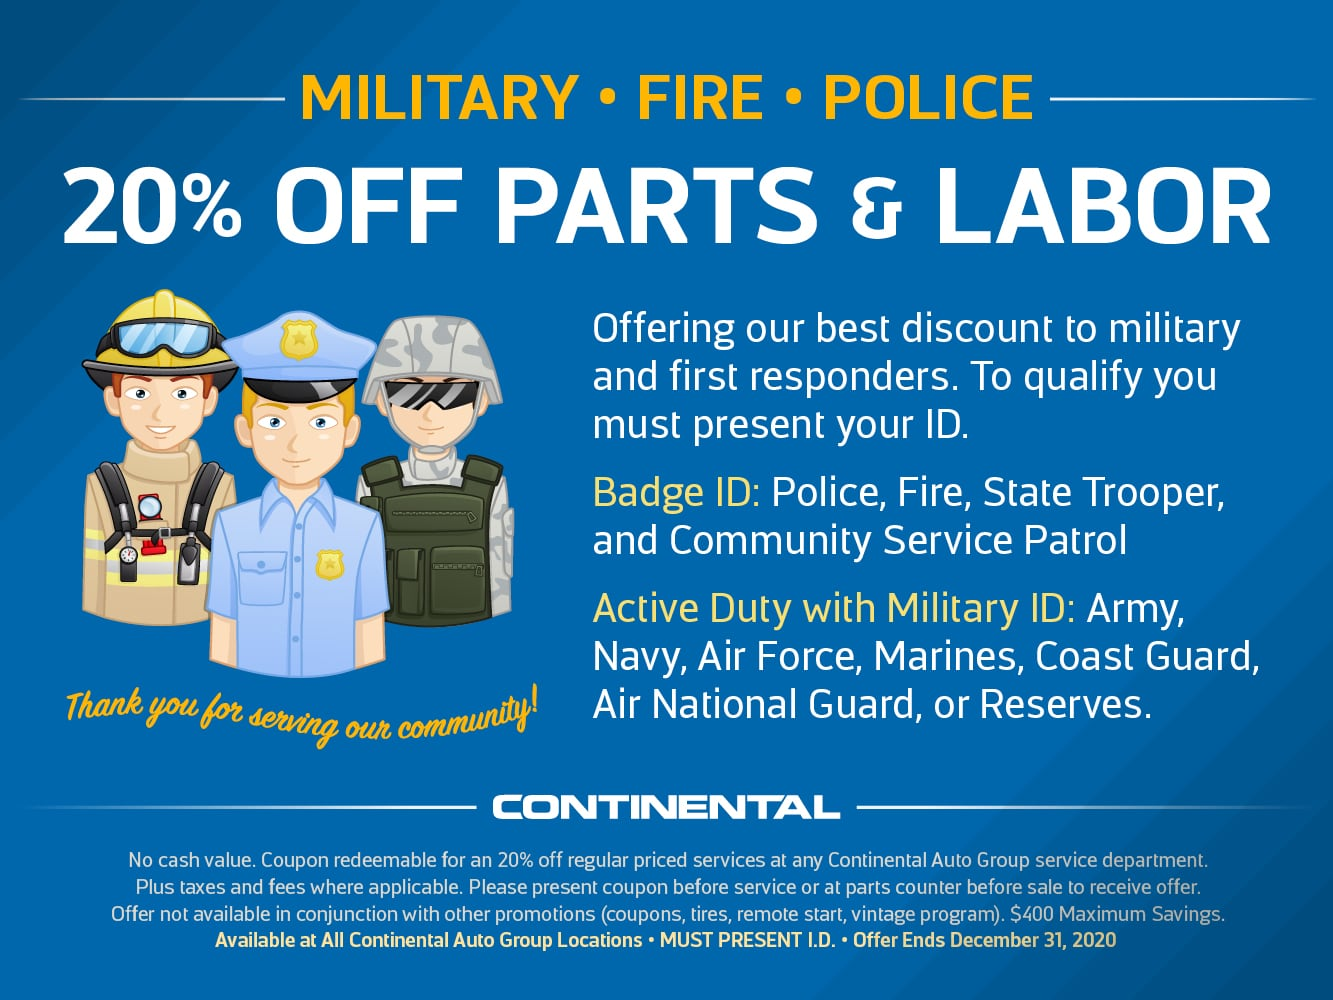 Military Police and Fire Dept Discount